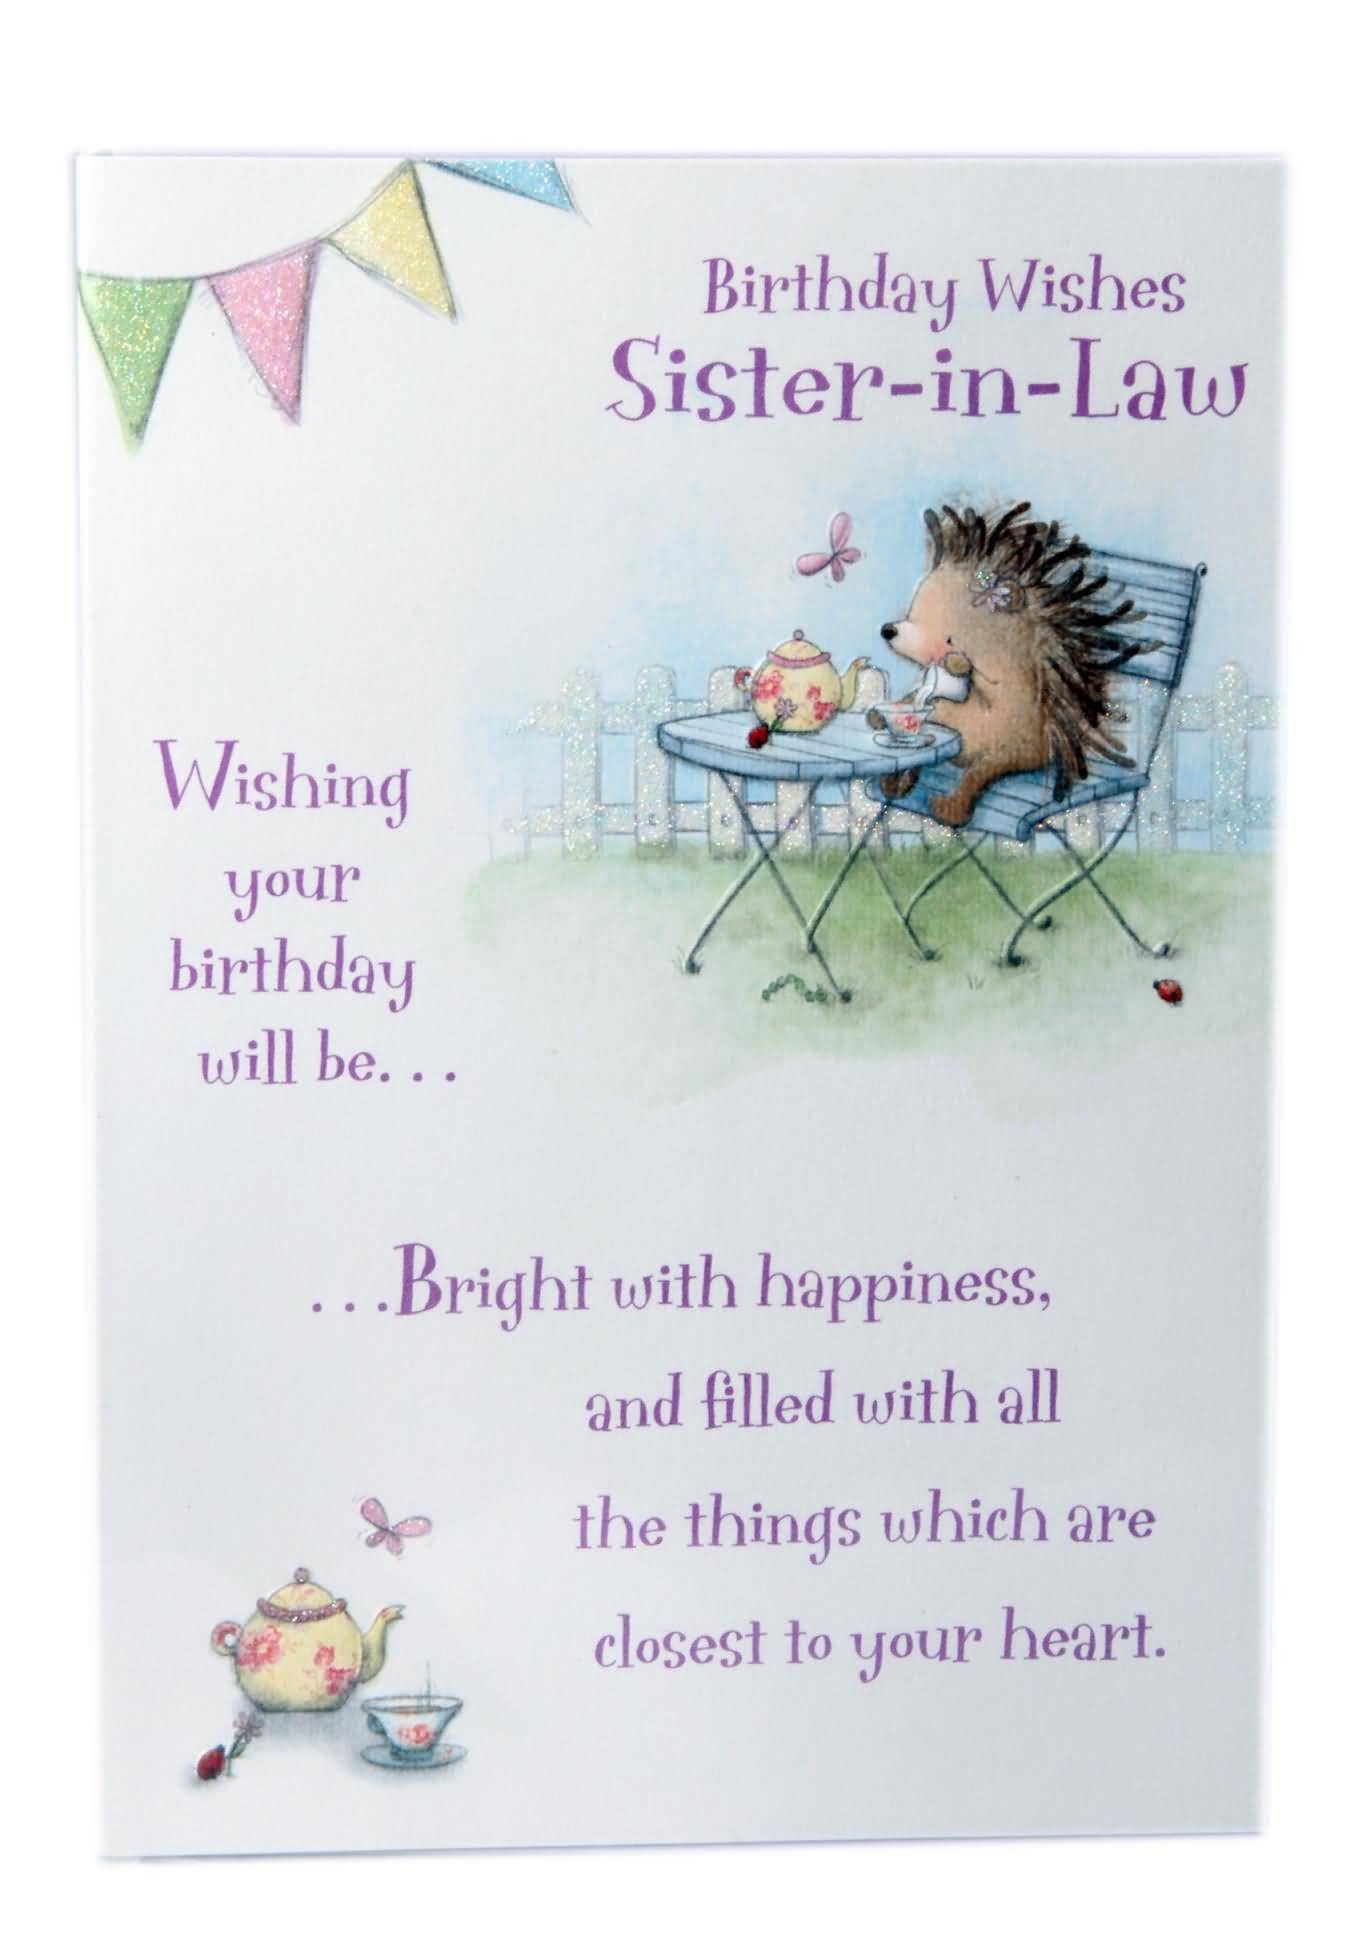 Best ideas about Birthday Wishes Sister In Law . Save or Pin Birthday Wishes For Sister In Law Now.